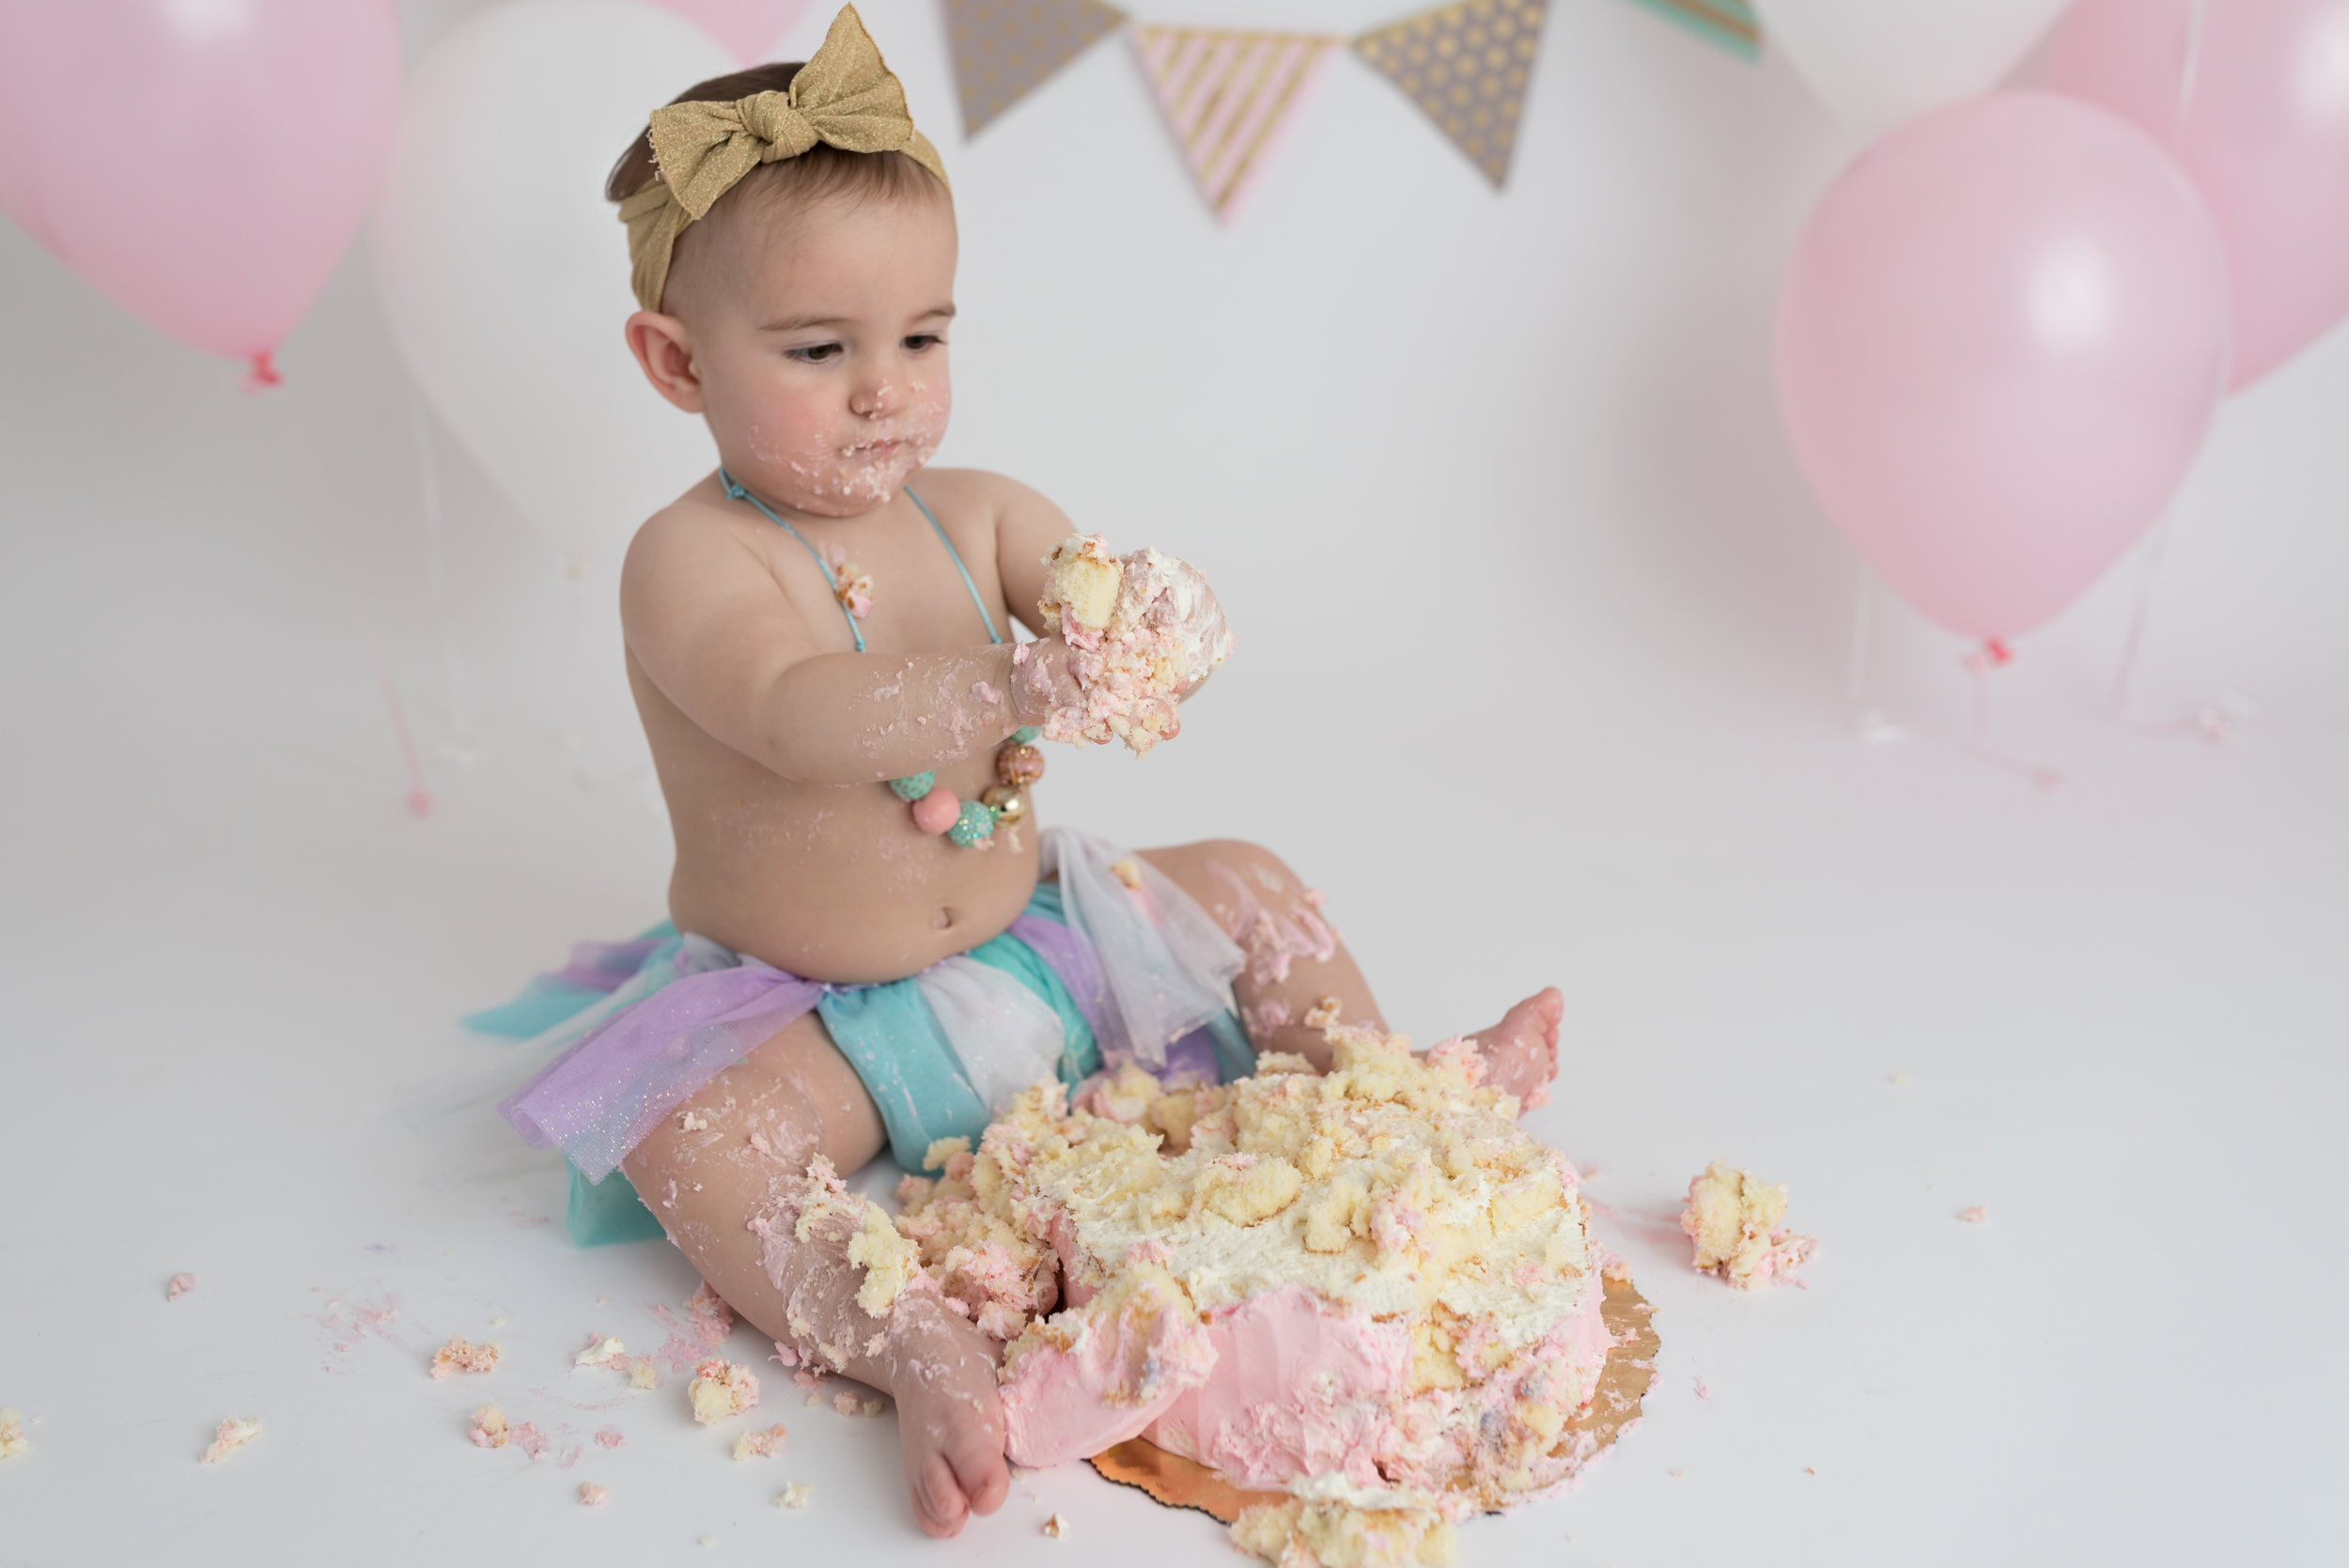 Charleston-Cake-Smash-Photographer-FSP_1115 copy.jpg